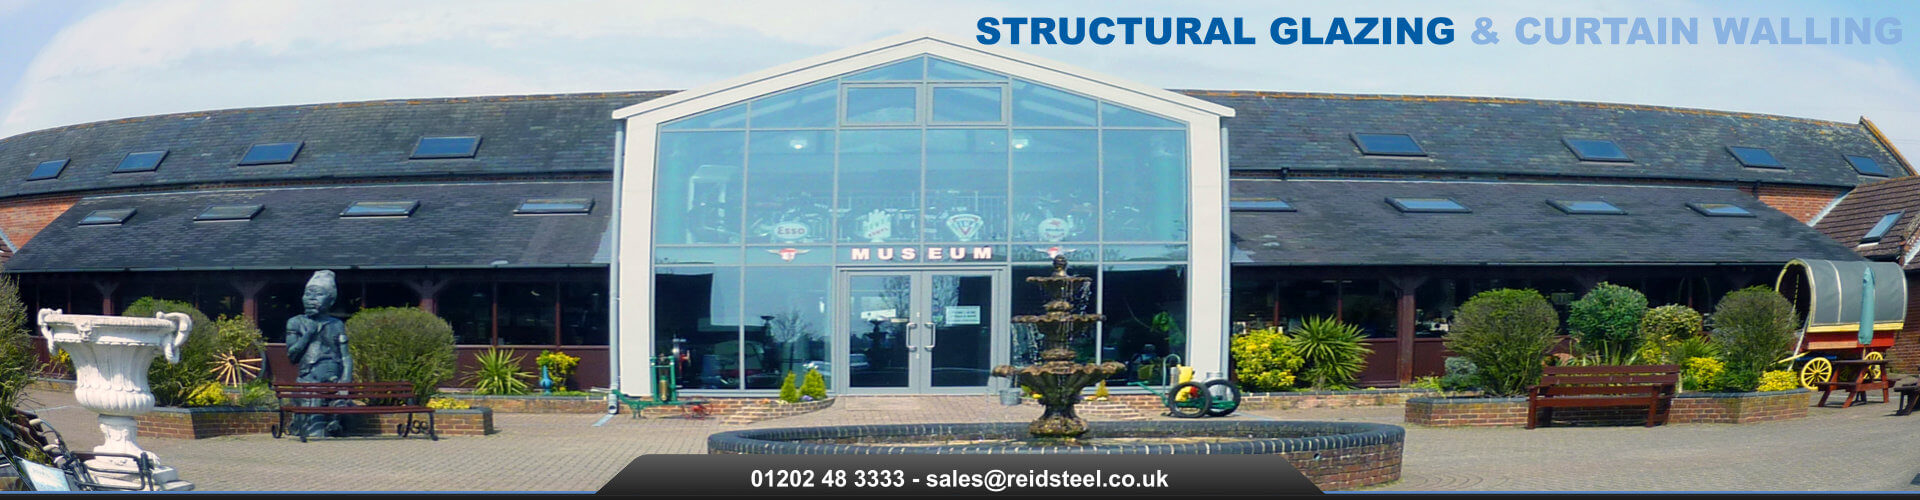 Structural Glazing, Cladding & Curtain Walling | Examples